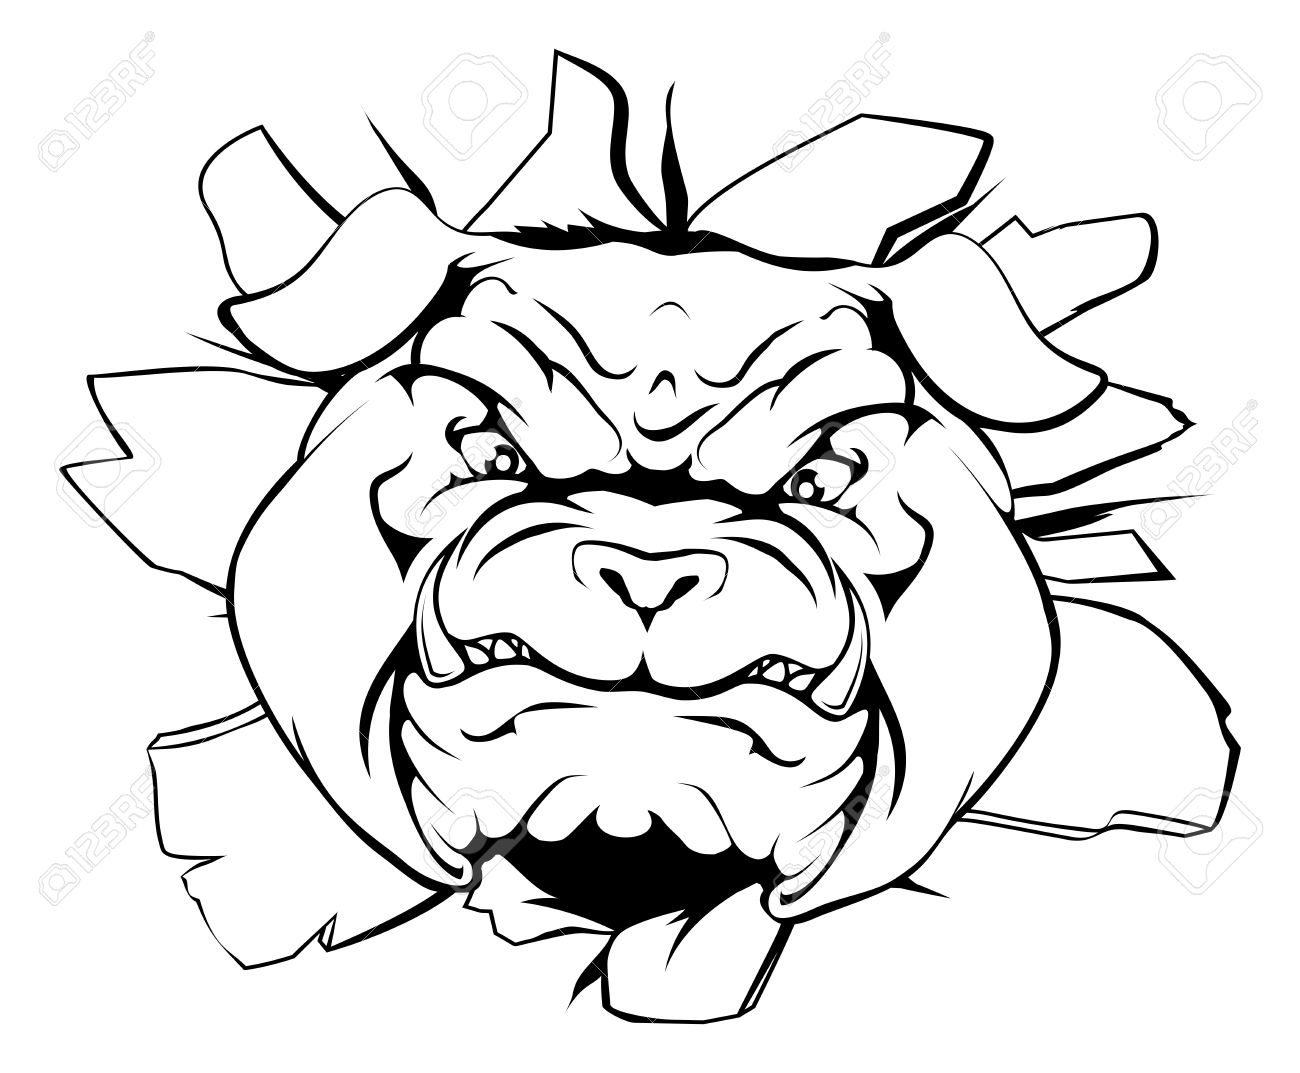 1300x1073 An Illustration Of A Cartoon Tough Bulldog Character Face Tearing